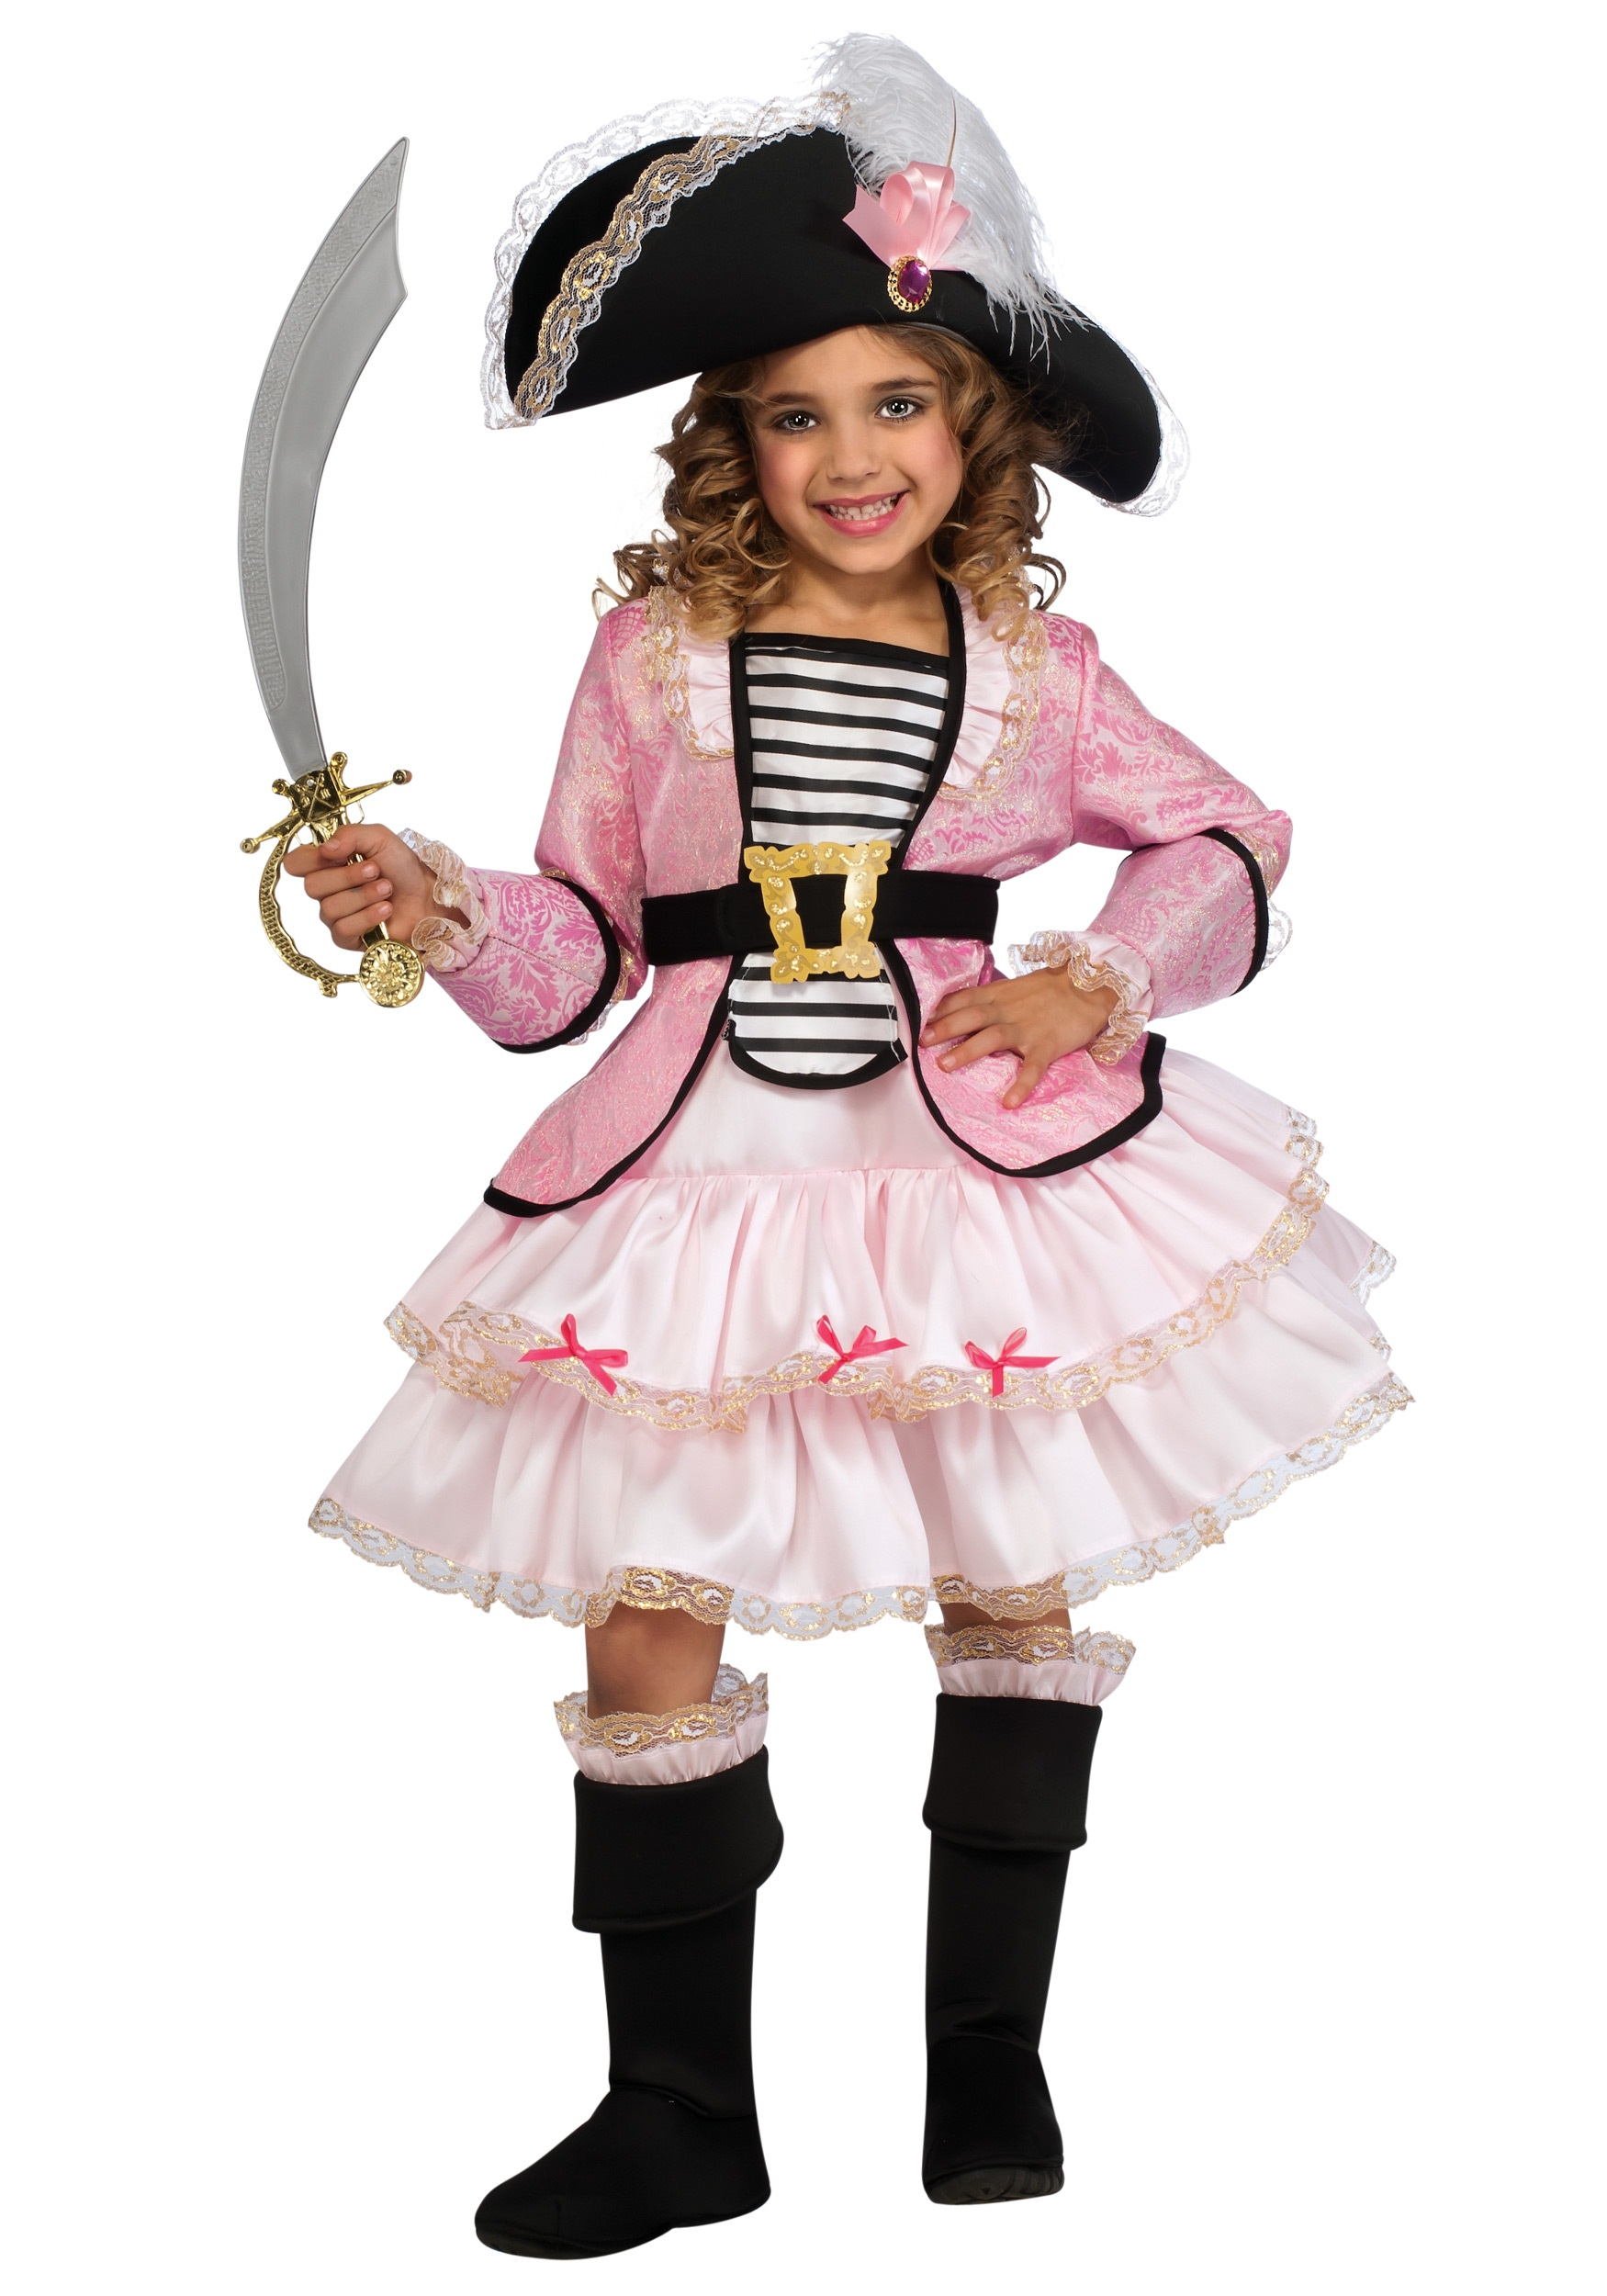 The Prince Charming costume includes: pants with yellow stripe, light Deals of the Day · Read Ratings & Reviews · Fast Shipping · Shop Best Sellers.